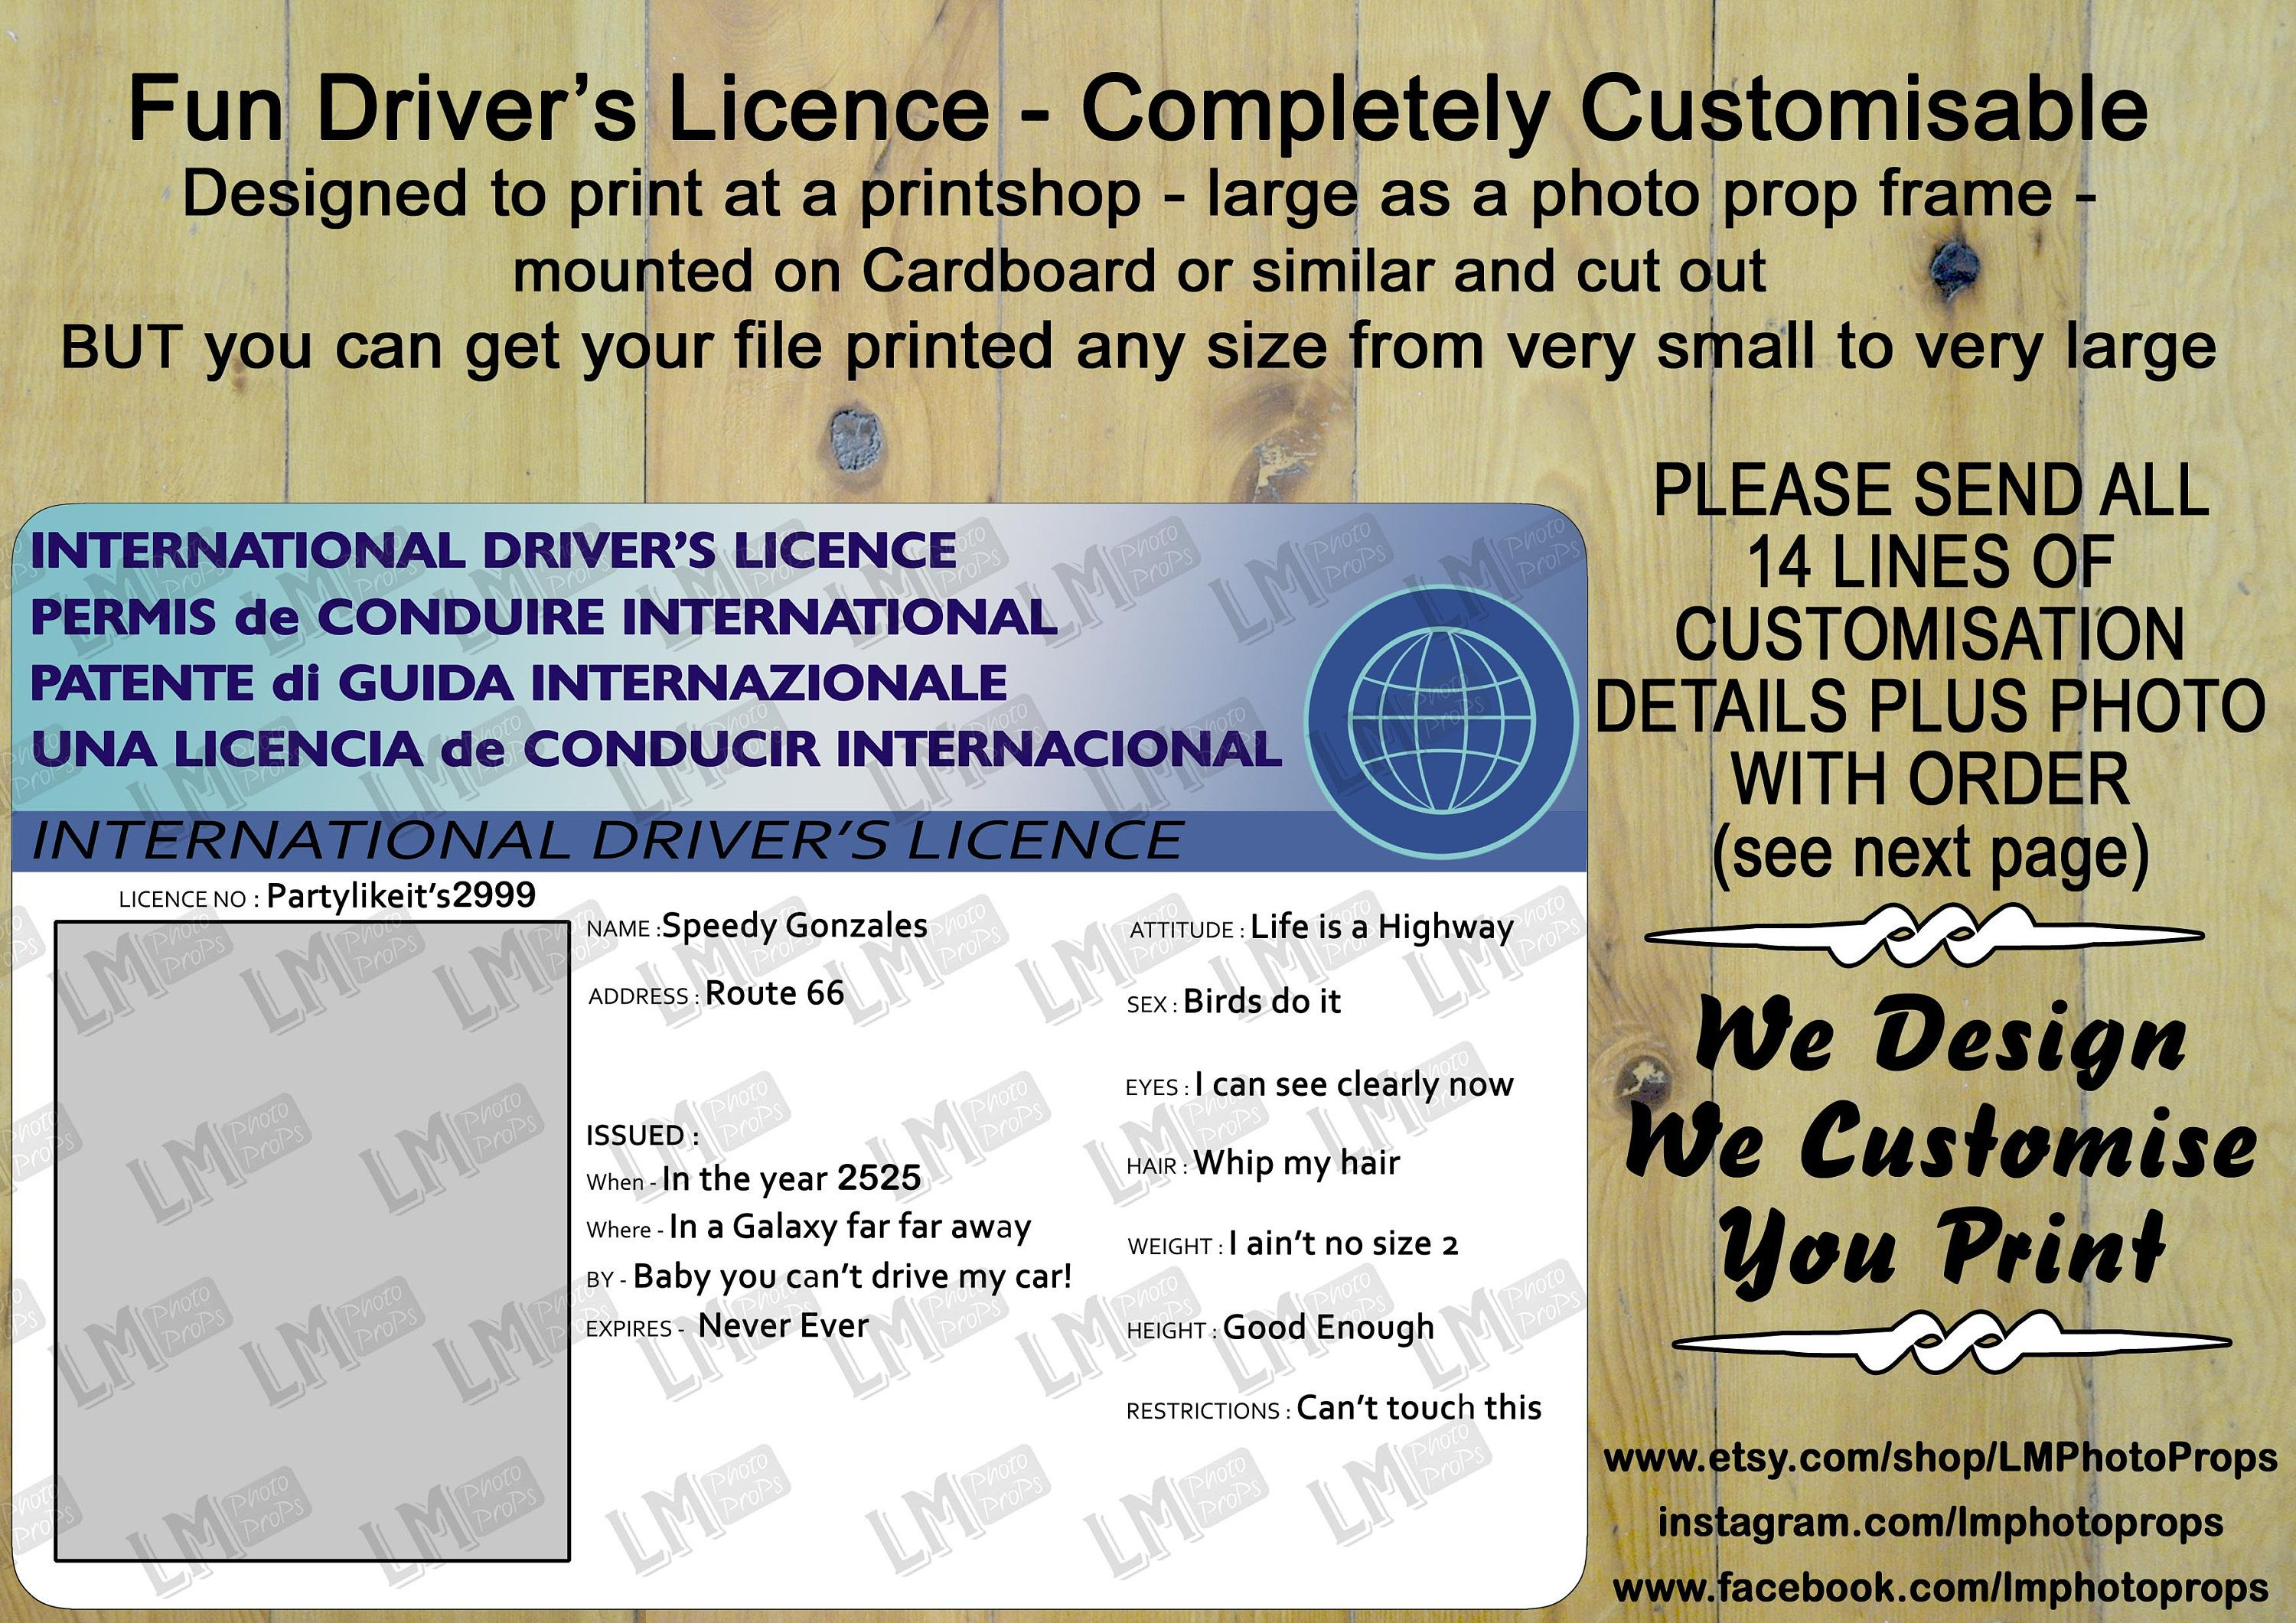 40db5595f8d52fa913f126c52d64fde0 - How To Get My Driving Licence Number Without My Licence